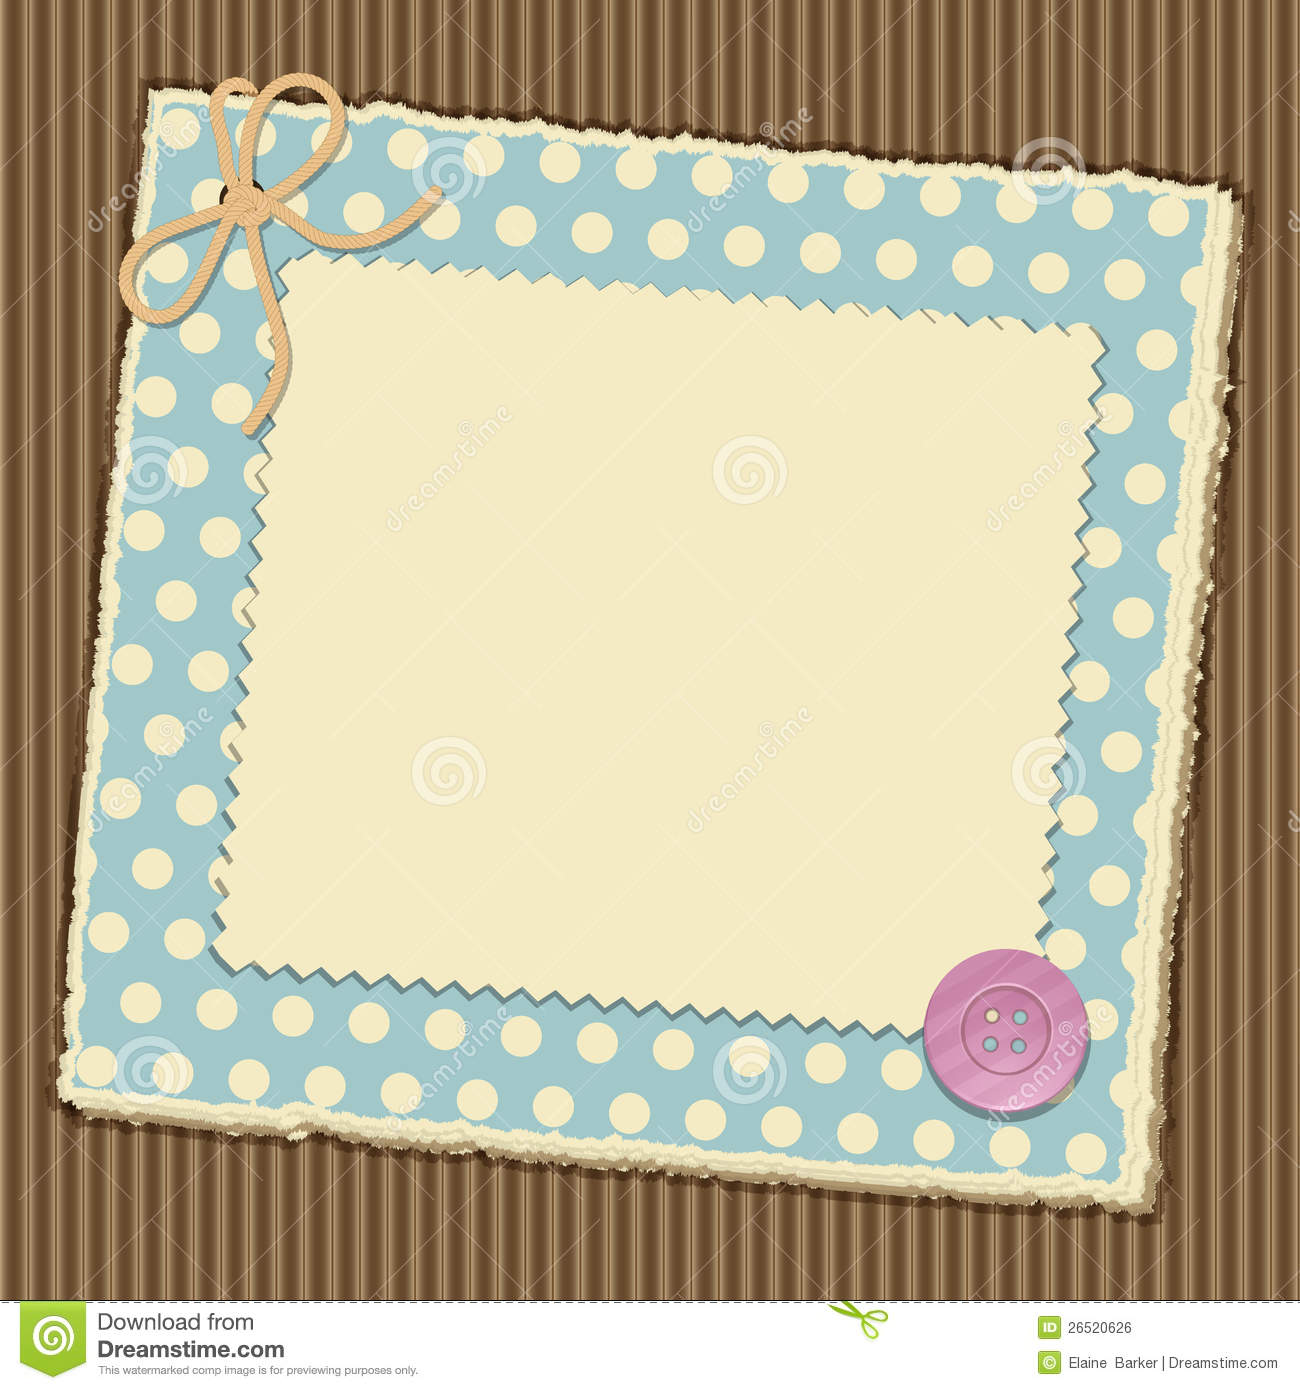 Scrapbooking Layout Royalty Free Stock Image - Image: 26520626